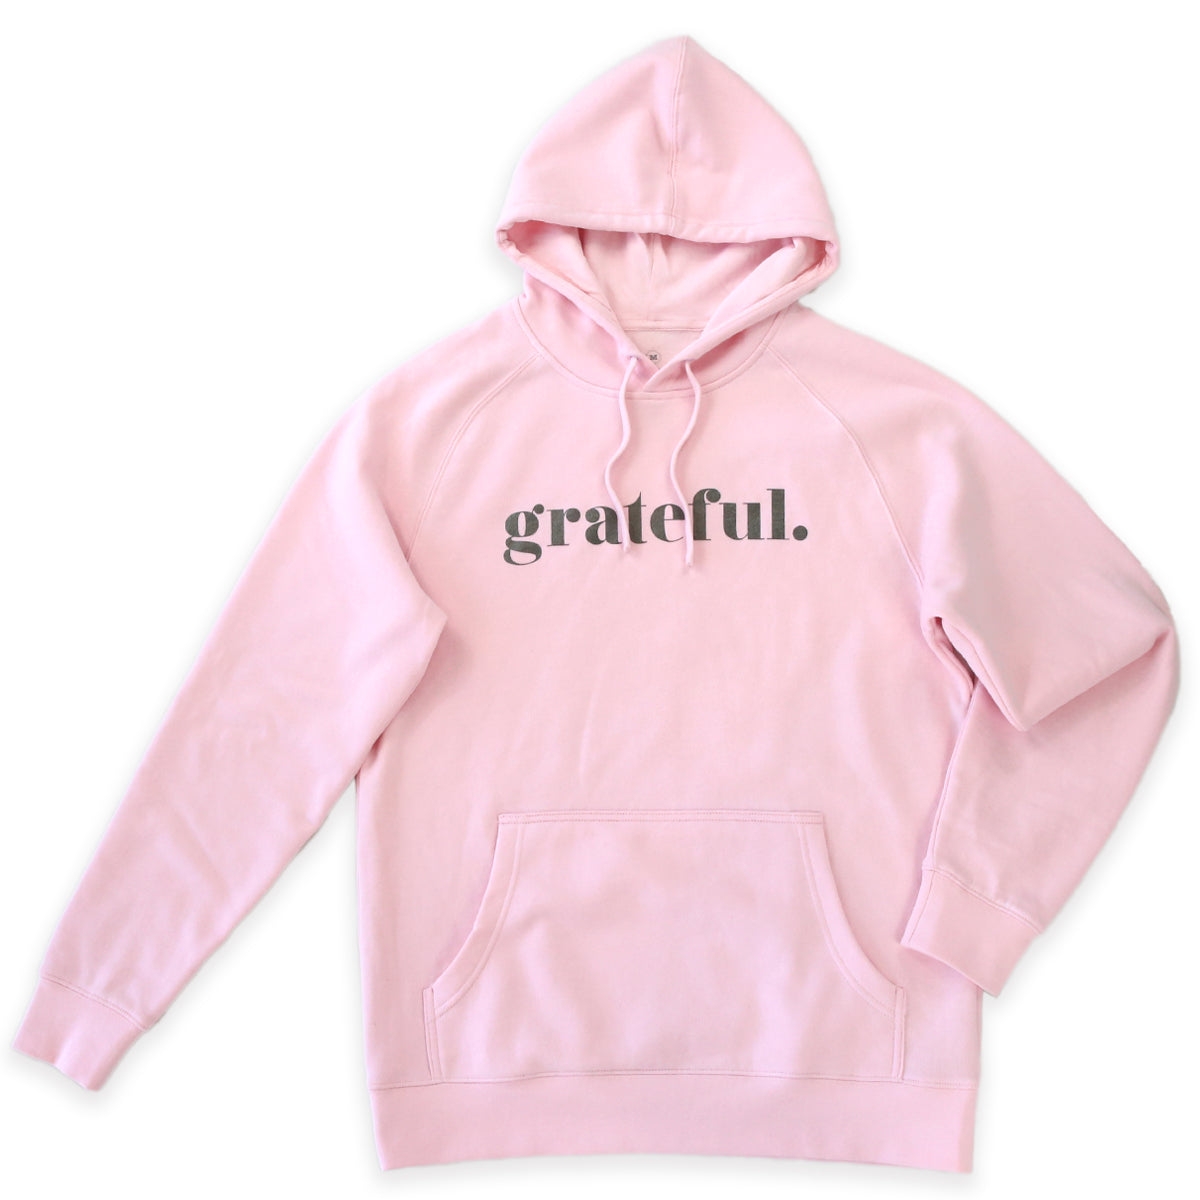 Grateful HOODIE - Pink with Charcoal Shimmer Print